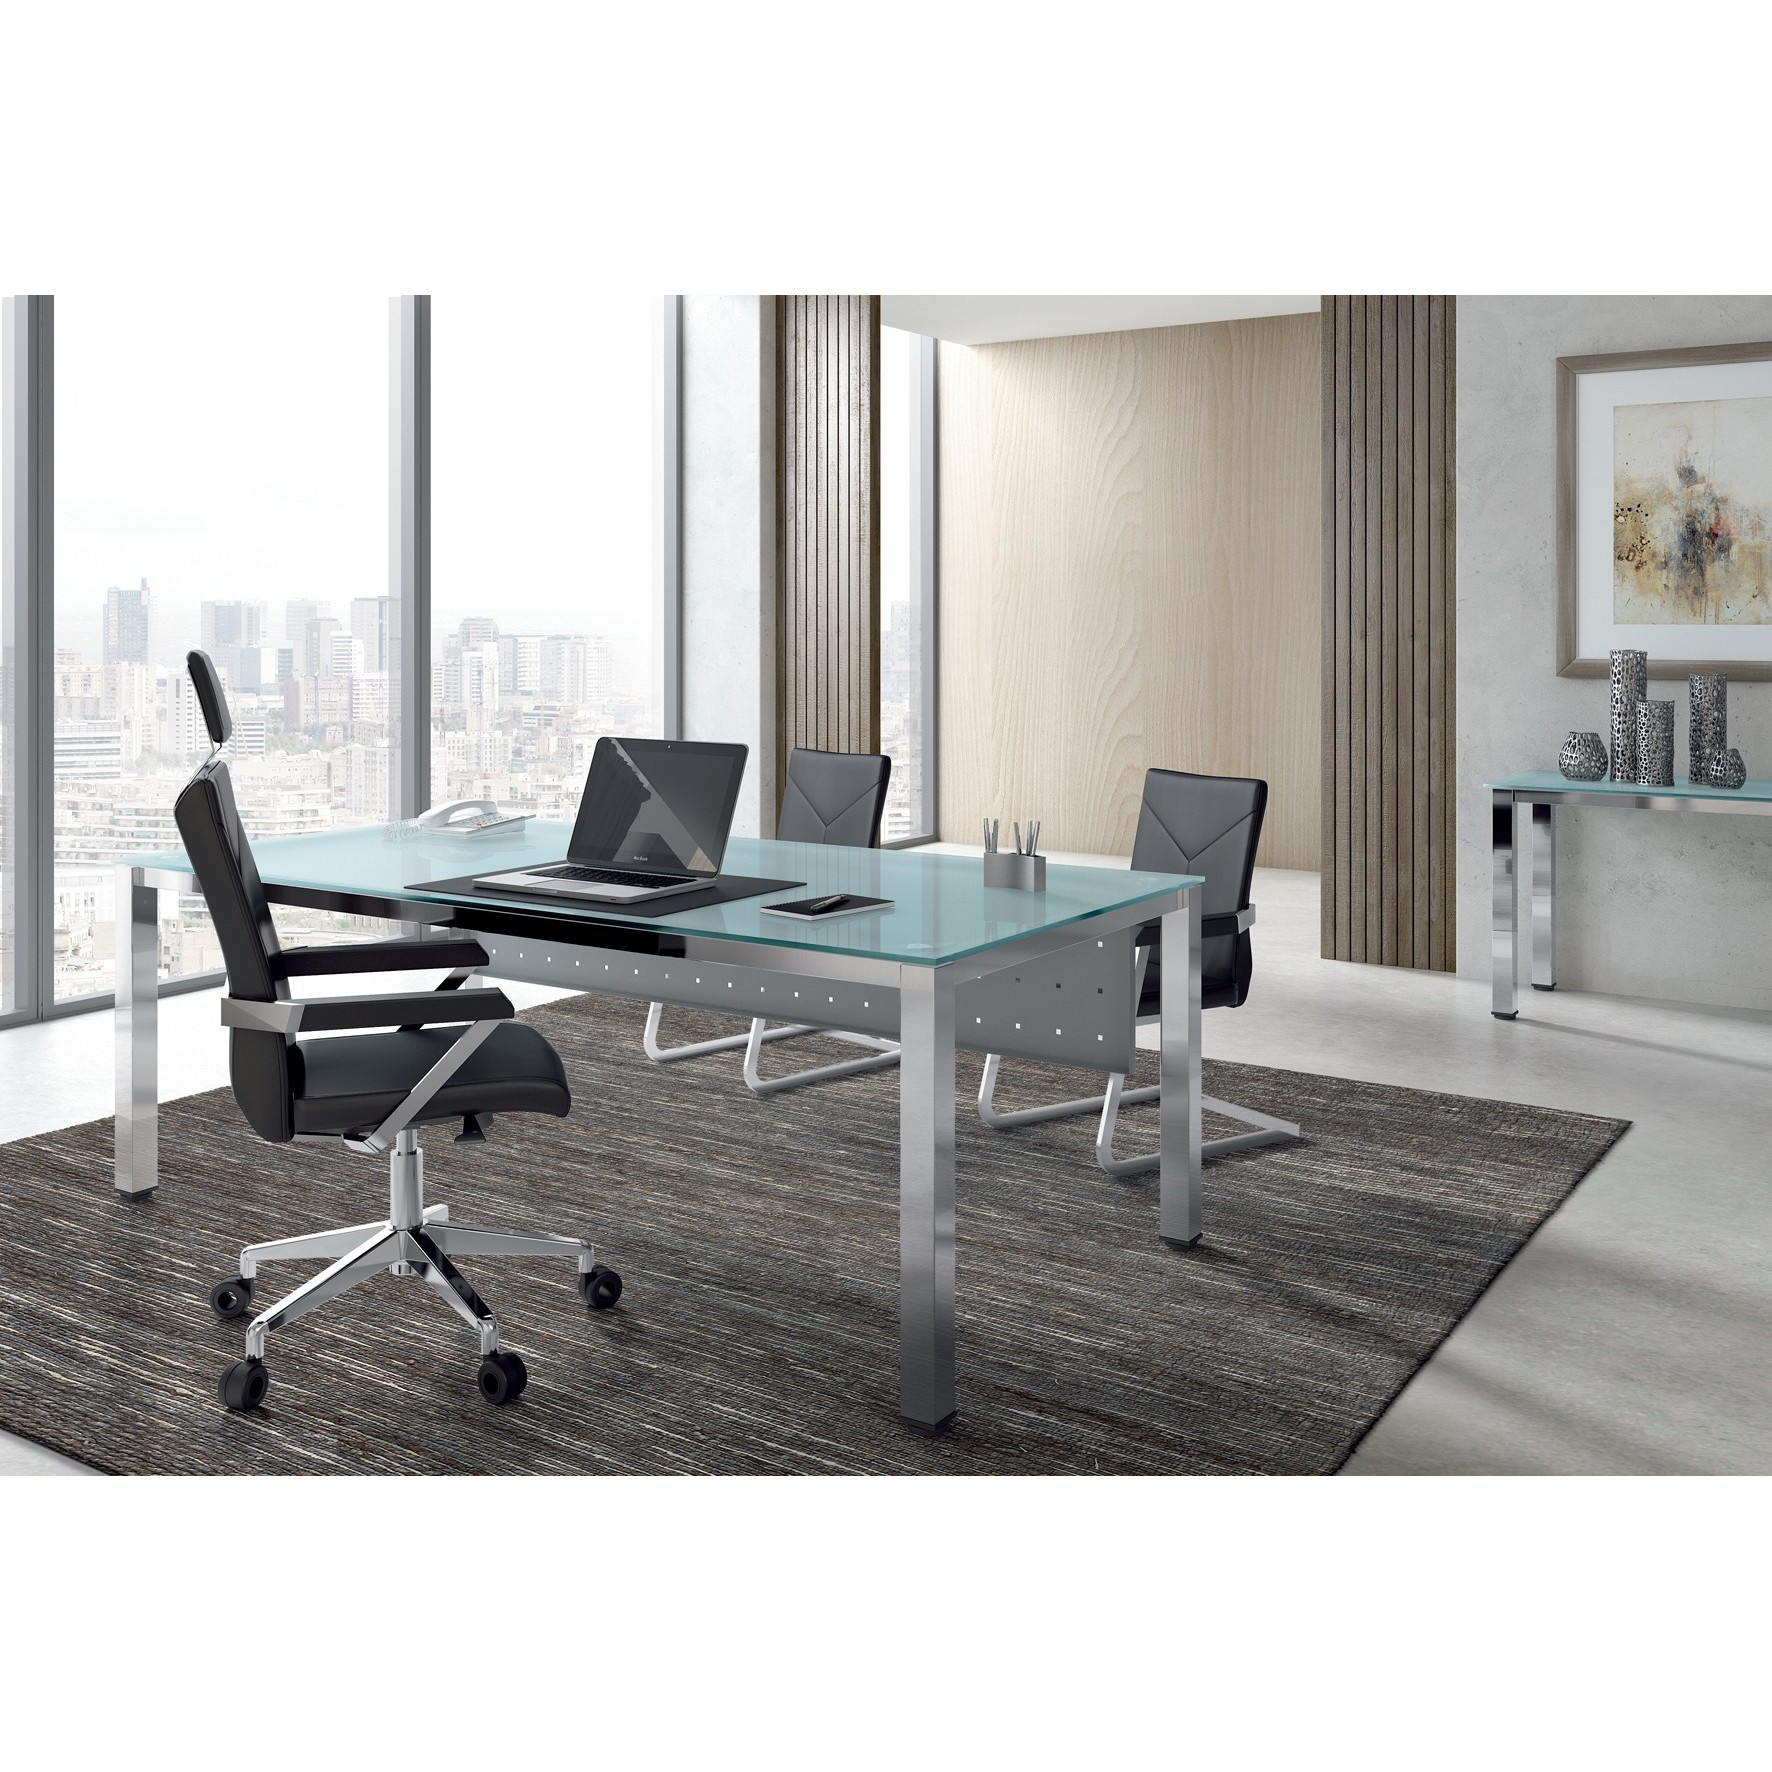 TABLE OFFICE 'S EXECUTIVE SERIES 140X80 WHITE/CRYSTAL